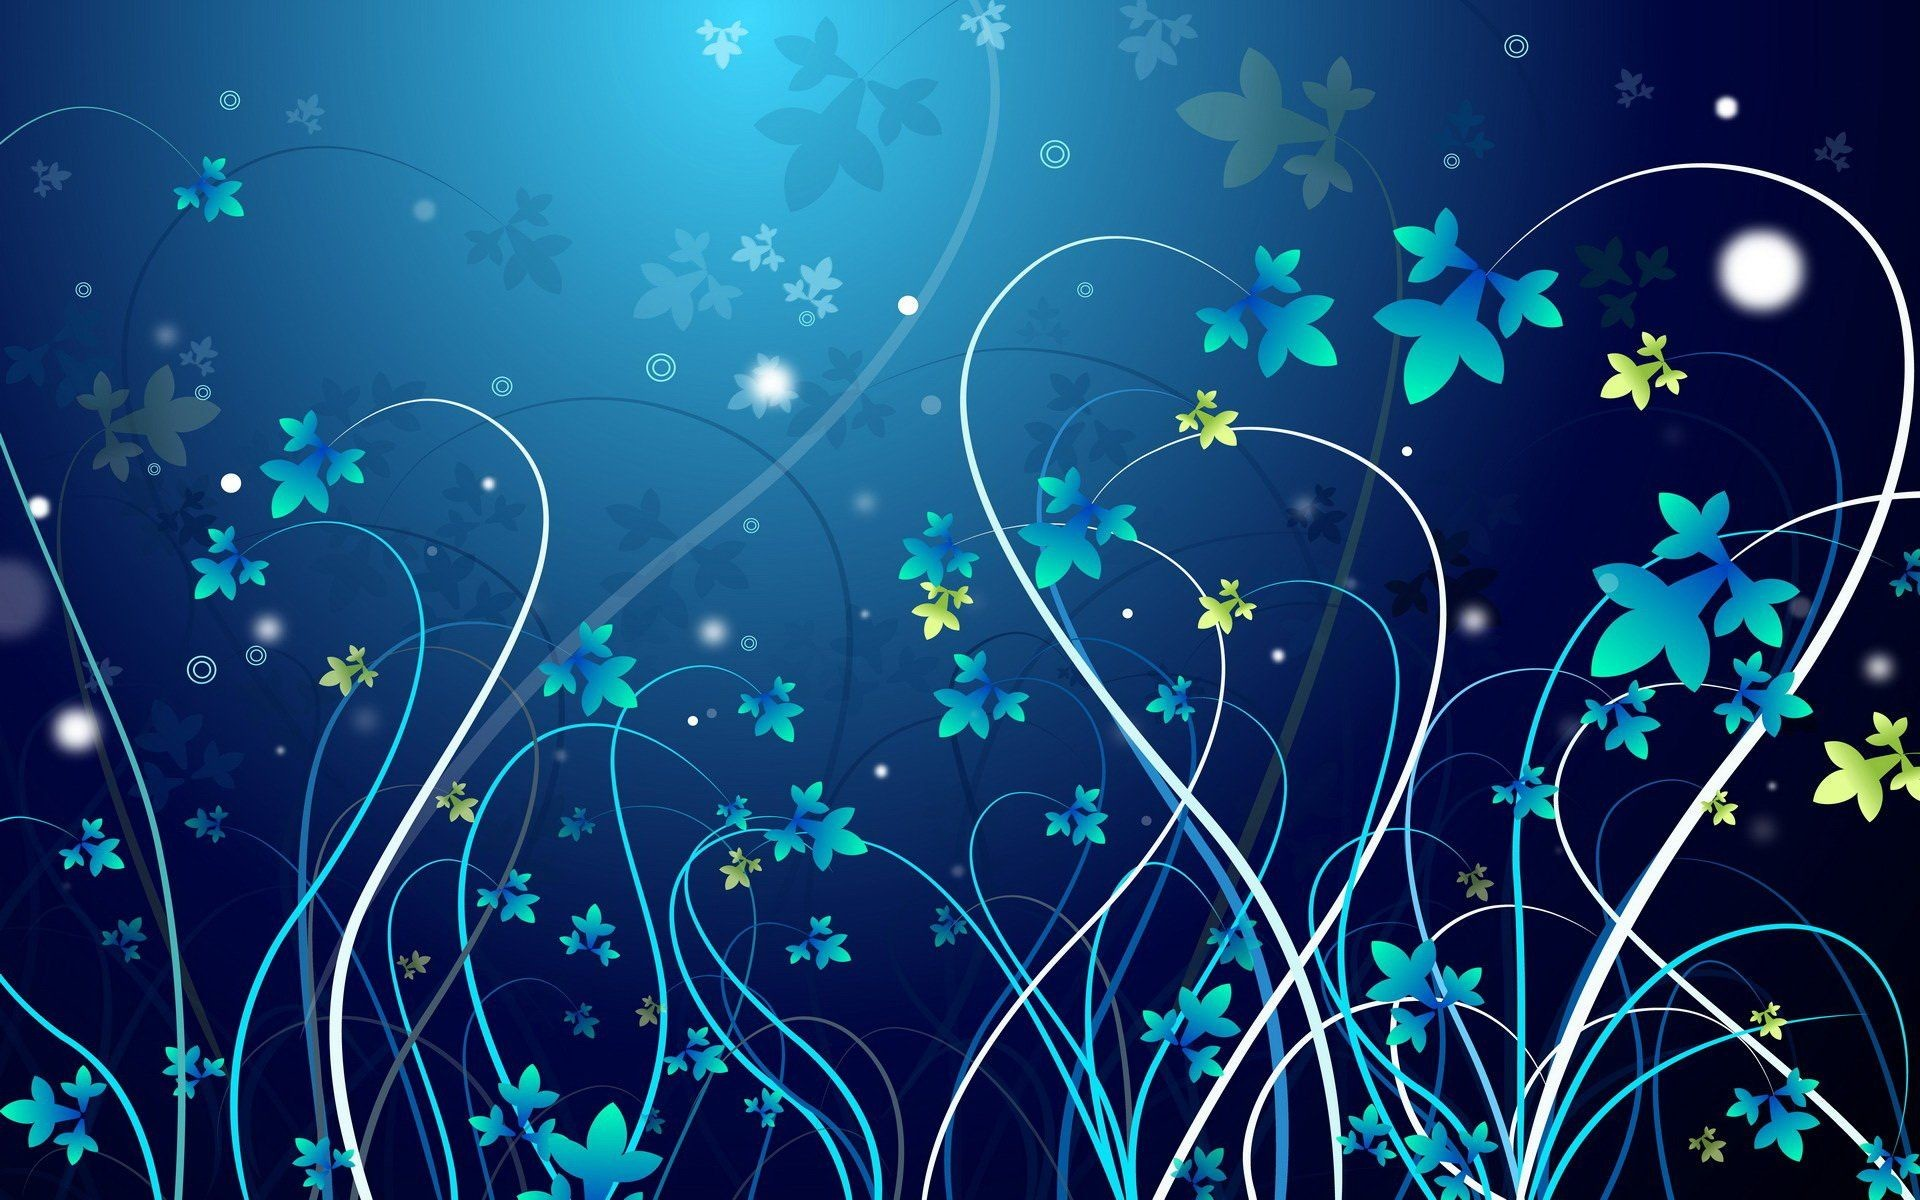 1920x1200 Pretty Blue Wallpapers - Wallpaper Cave